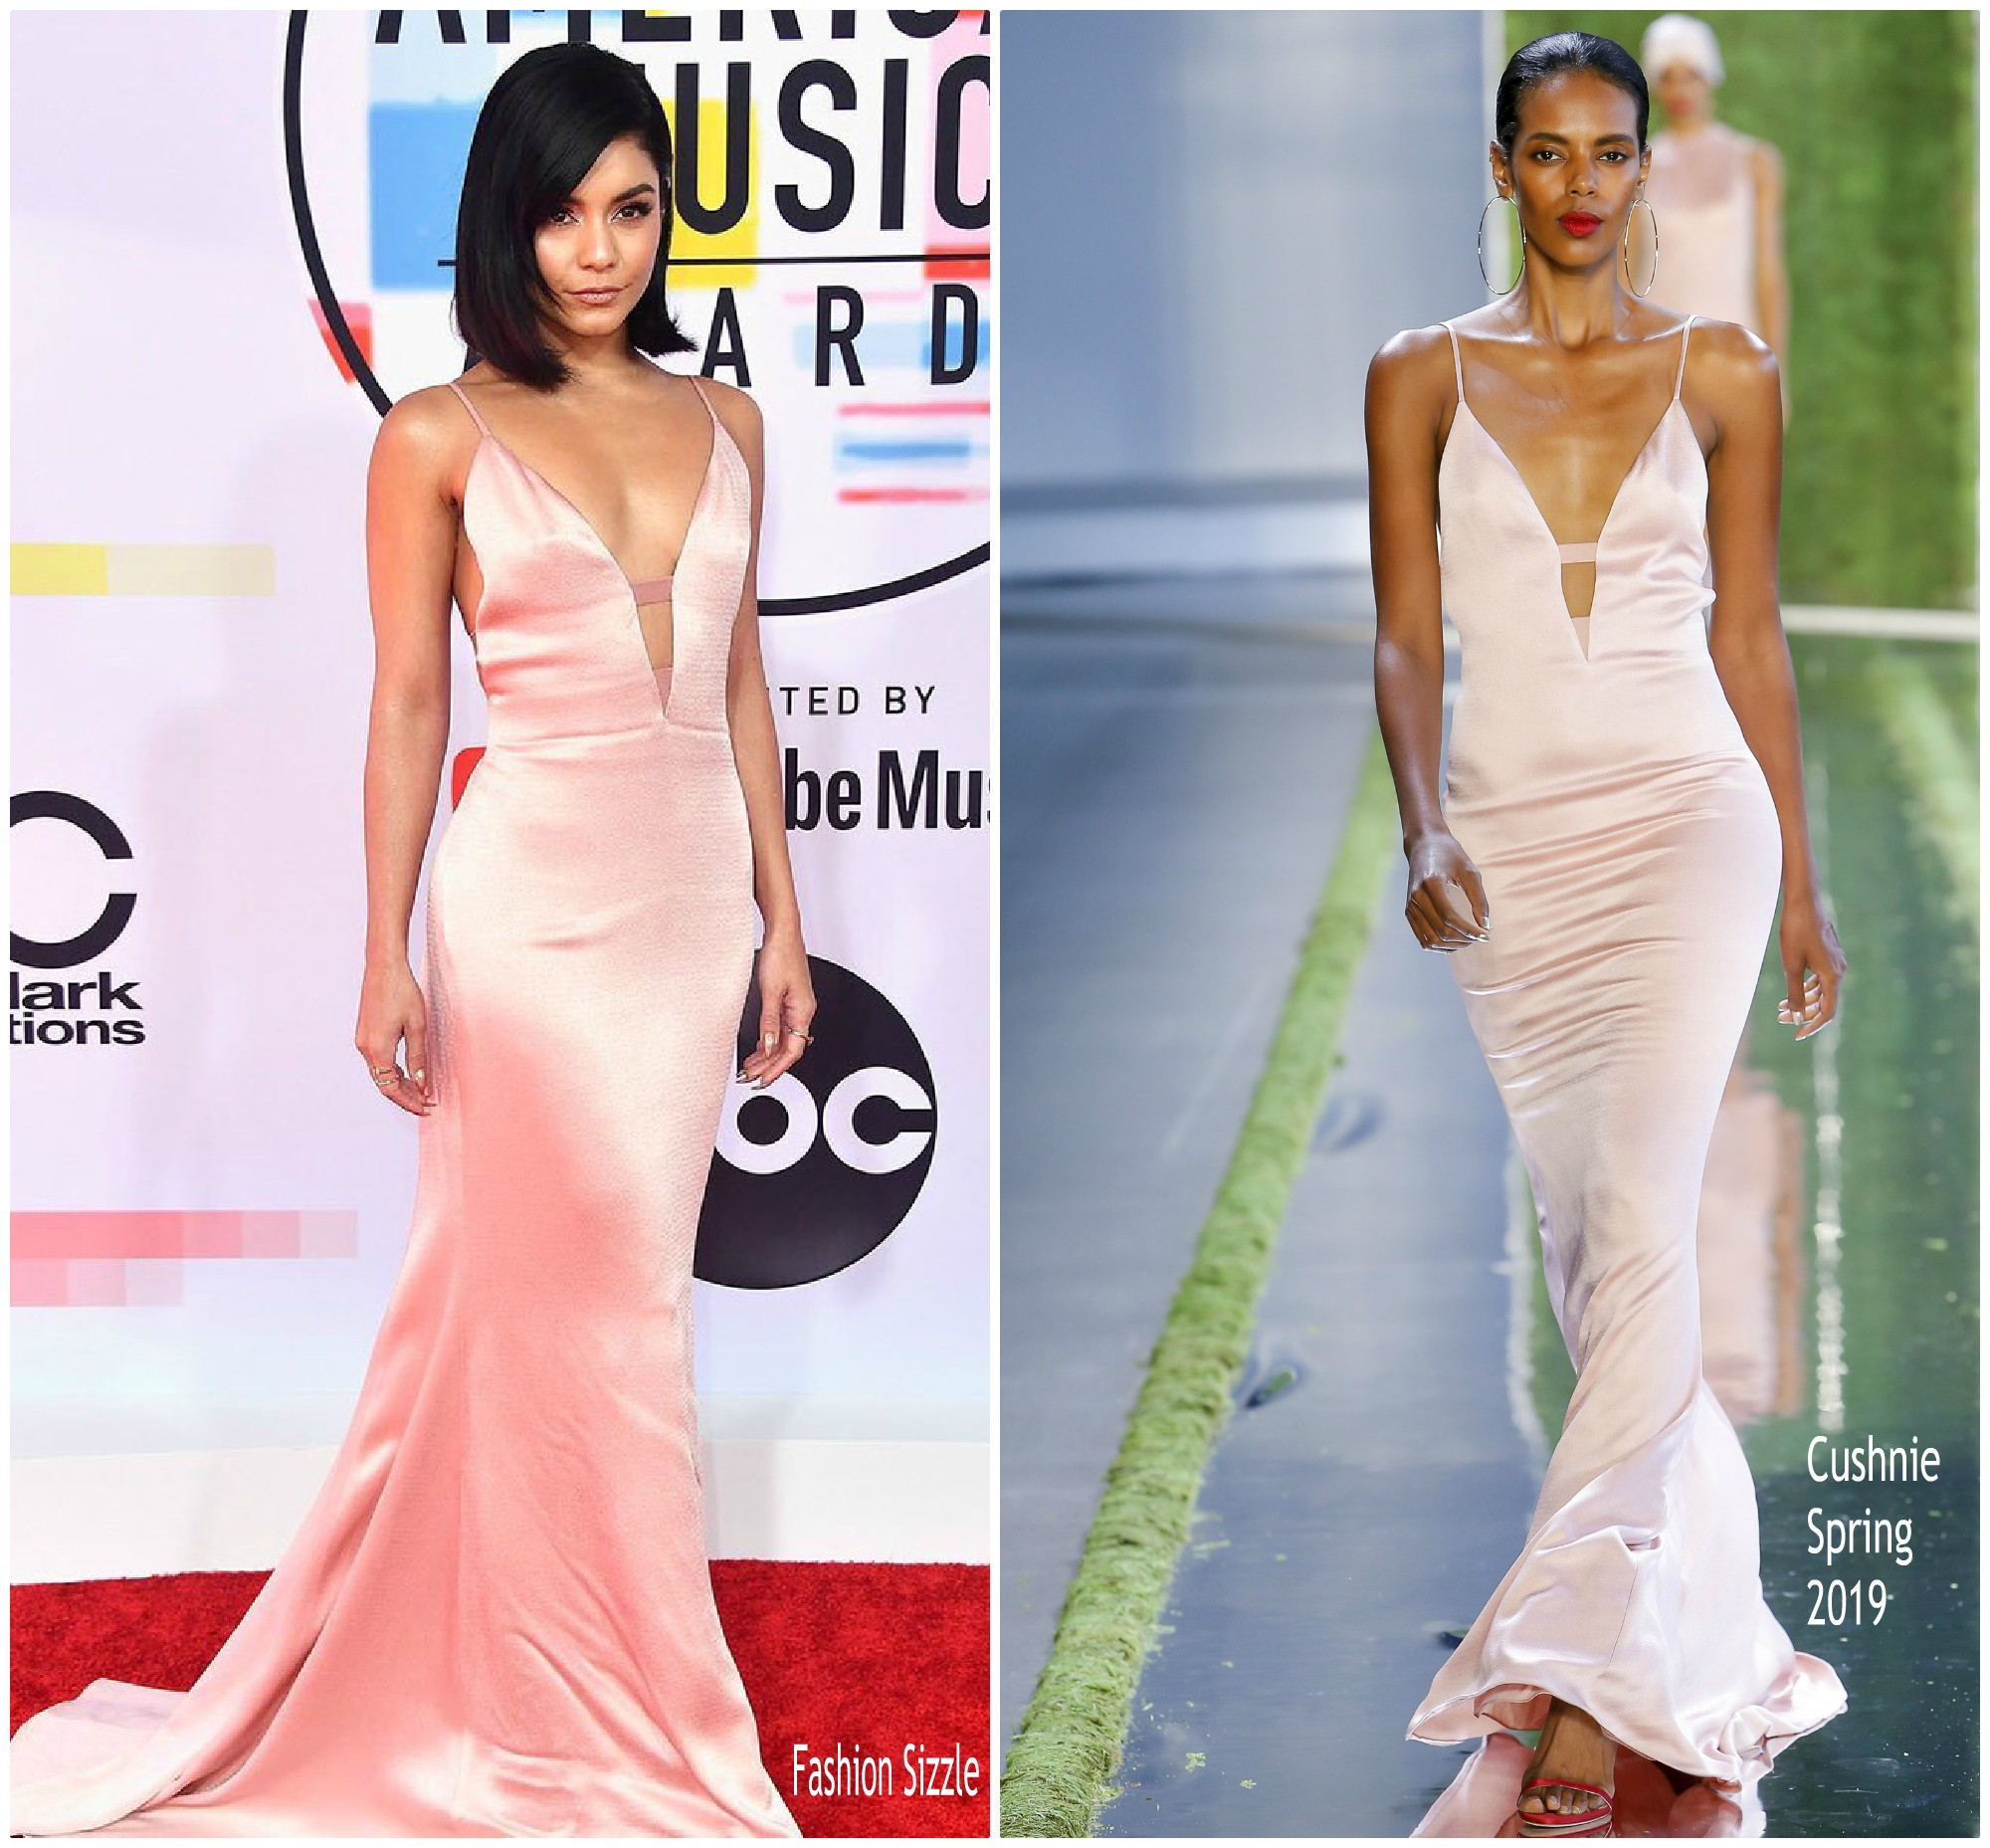 vanessa-hudgens-in-cushine-2018-american-music-awards